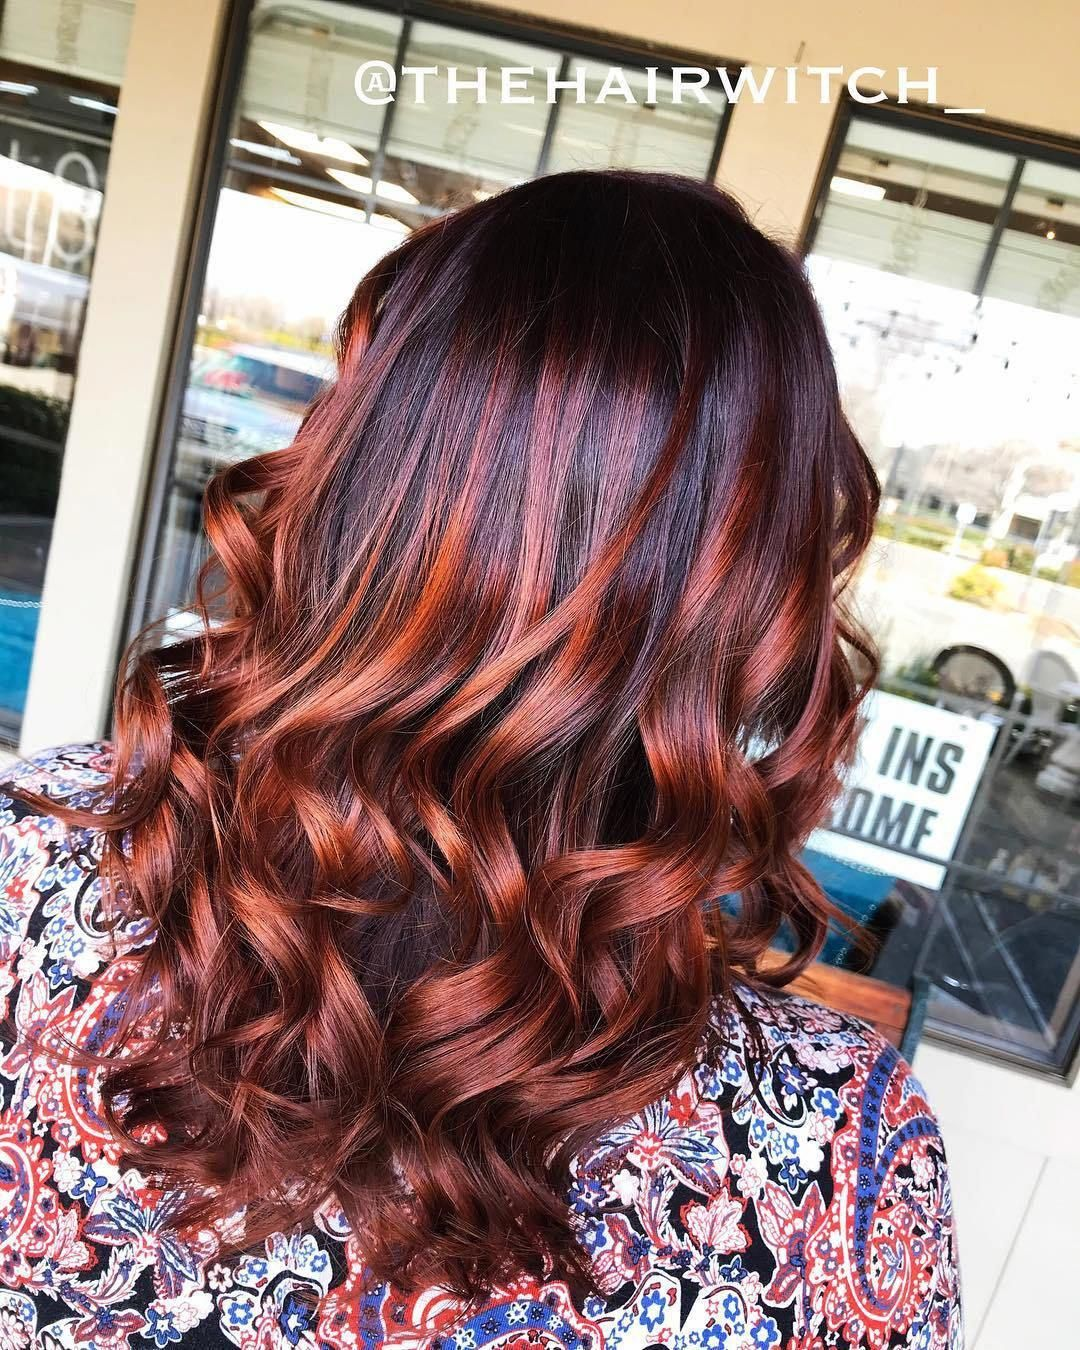 Dark Brown Hair With Copper Highlights Blackhairideas Red Highlights In Brown Hair Copper Highlights On Brown Hair Hair Color Light Brown